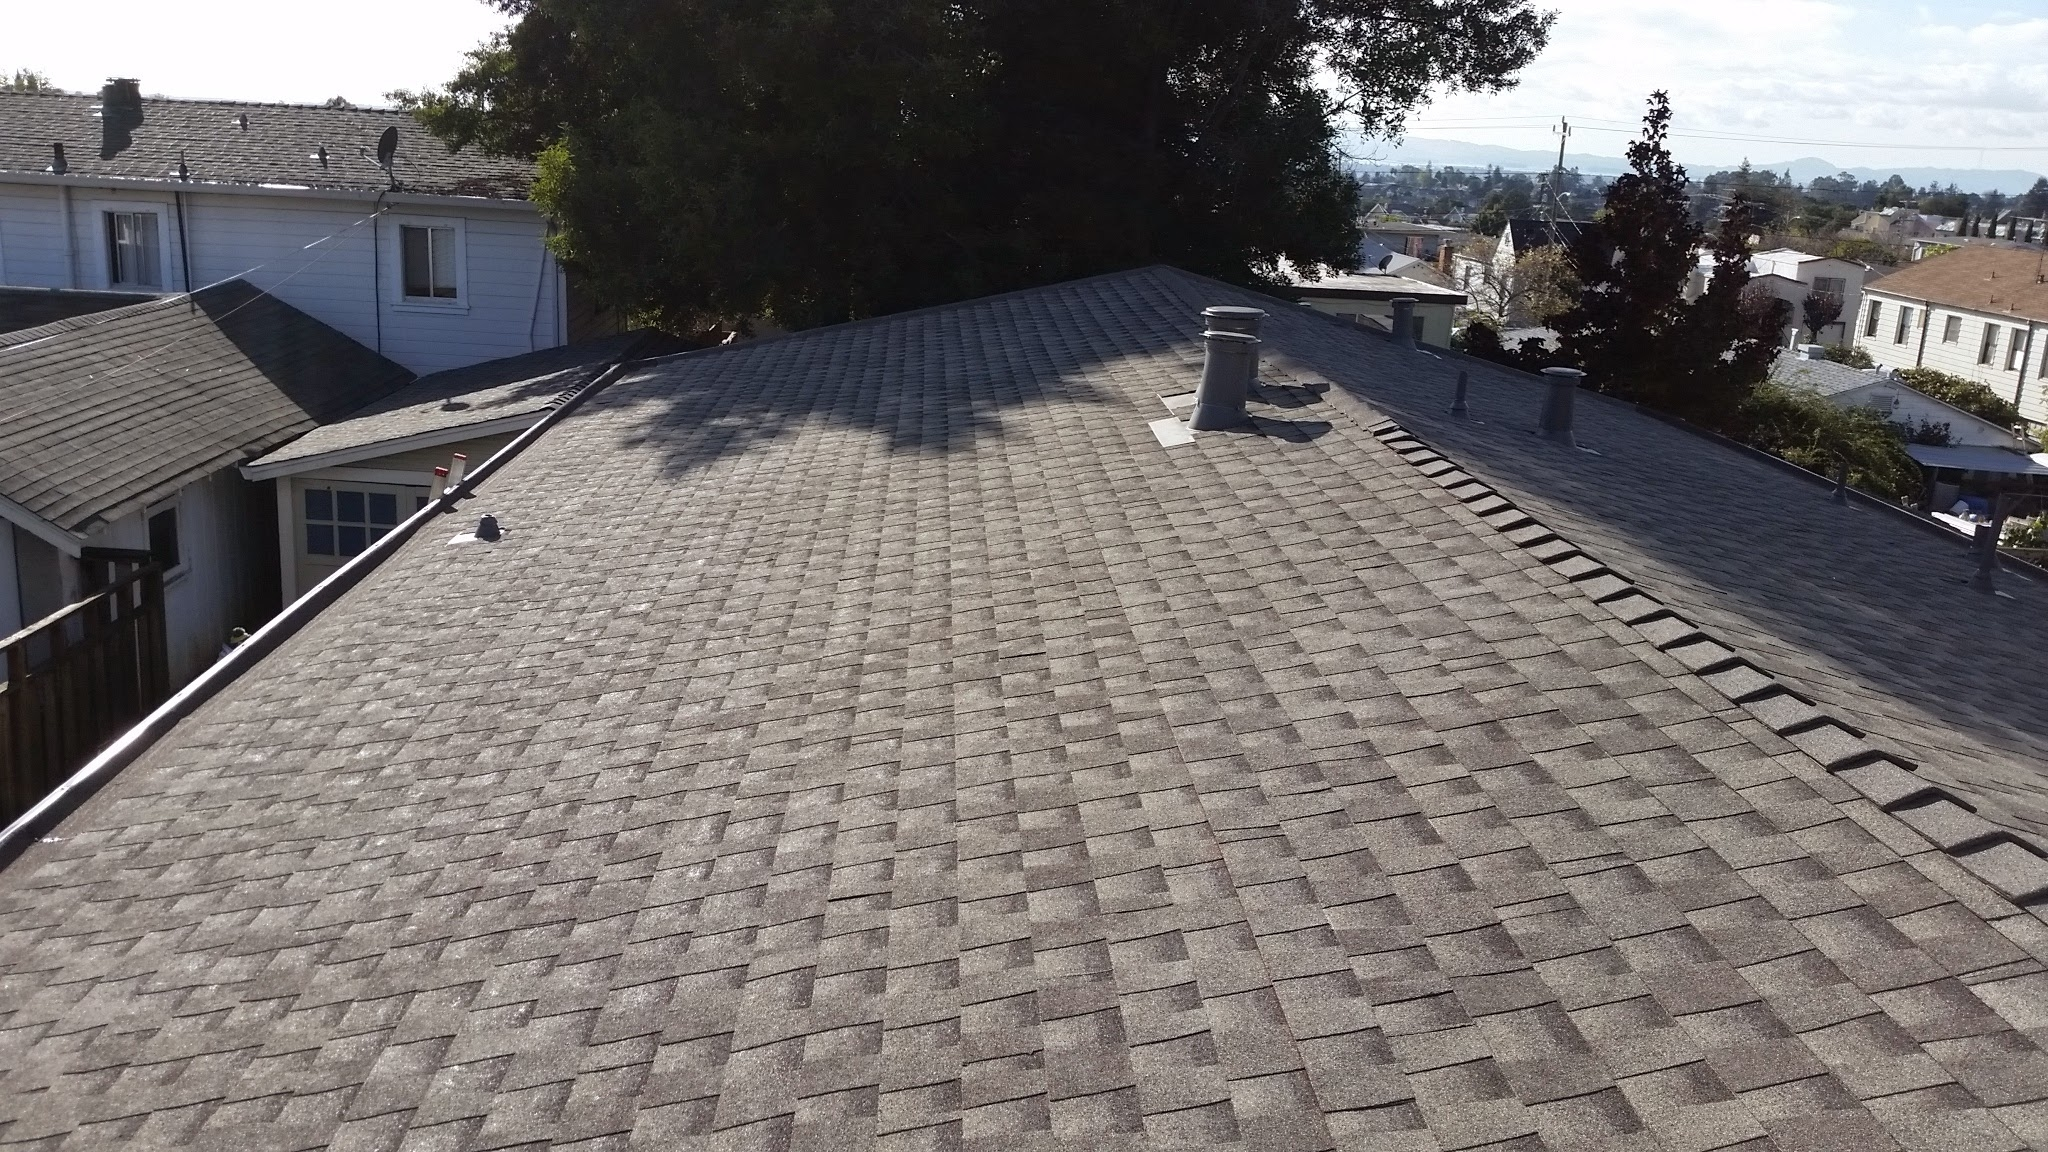 Pacific coast roofing service in richmond ca whitepages for Jj fish and chicken chicago il